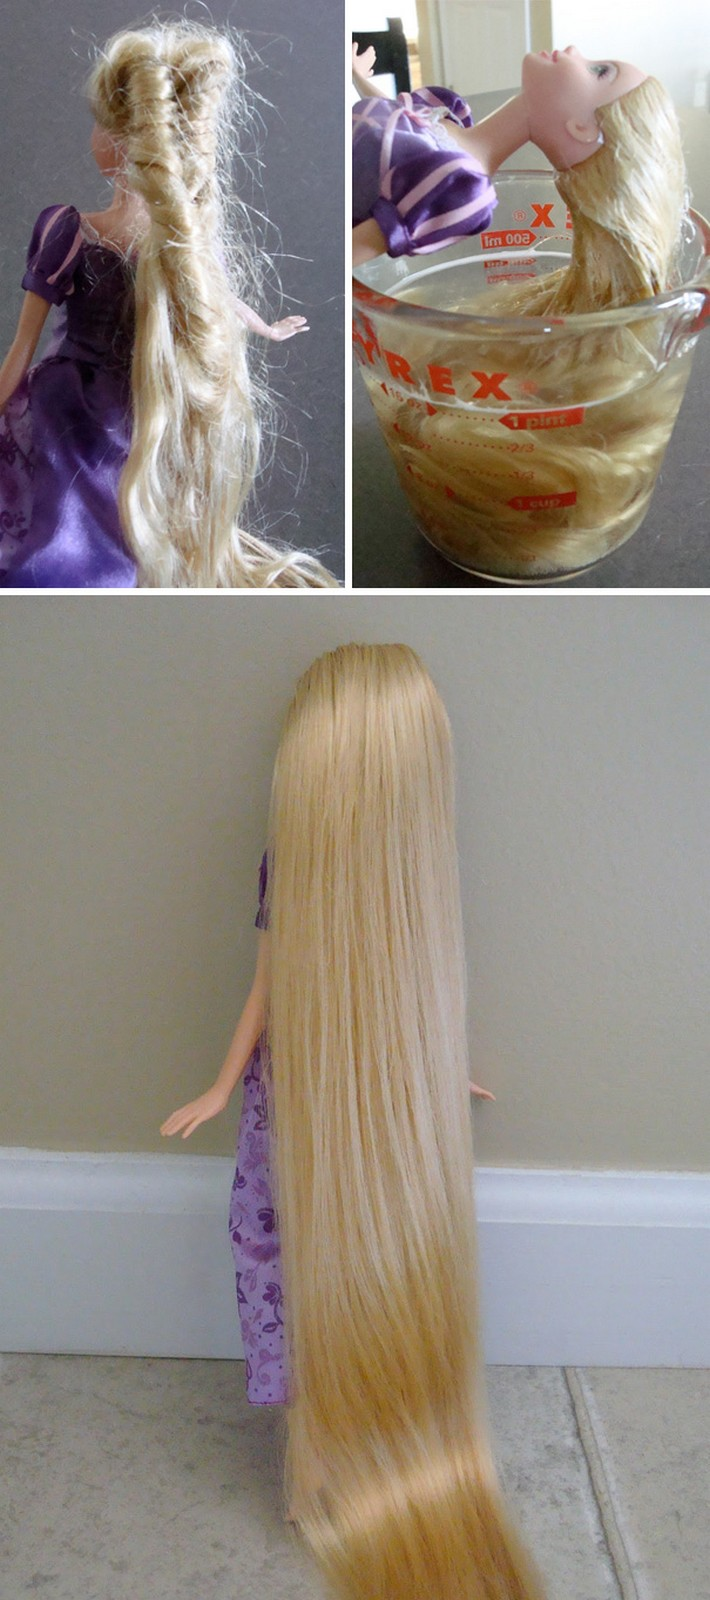 21 Best Mom Hacks - Detangle doll's hair with hot water, shampoo, and conditioner.